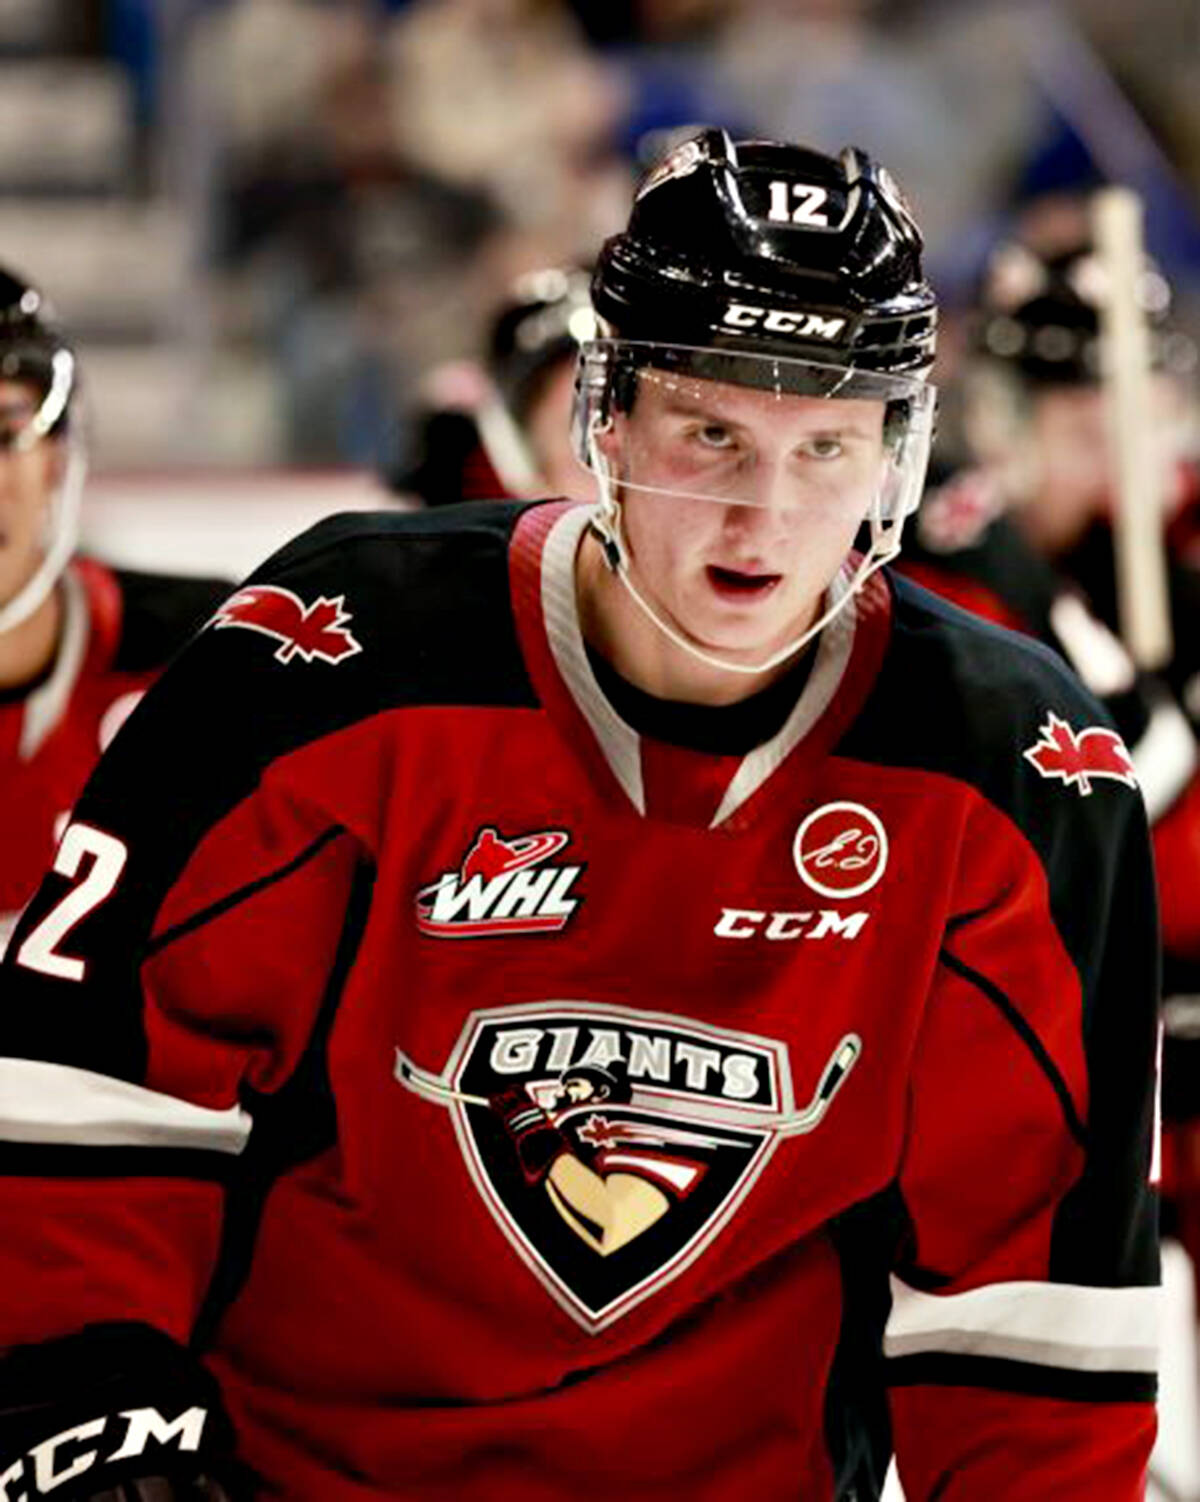 Adam Hall led the Vancouver Giants with a pair of goals, as the team played their first home game in 588 days on Friday, Oct. 8, downing Prince George 6-4. (Rob Wilton/Vancouver Giants/Special to Langley Advance Times)